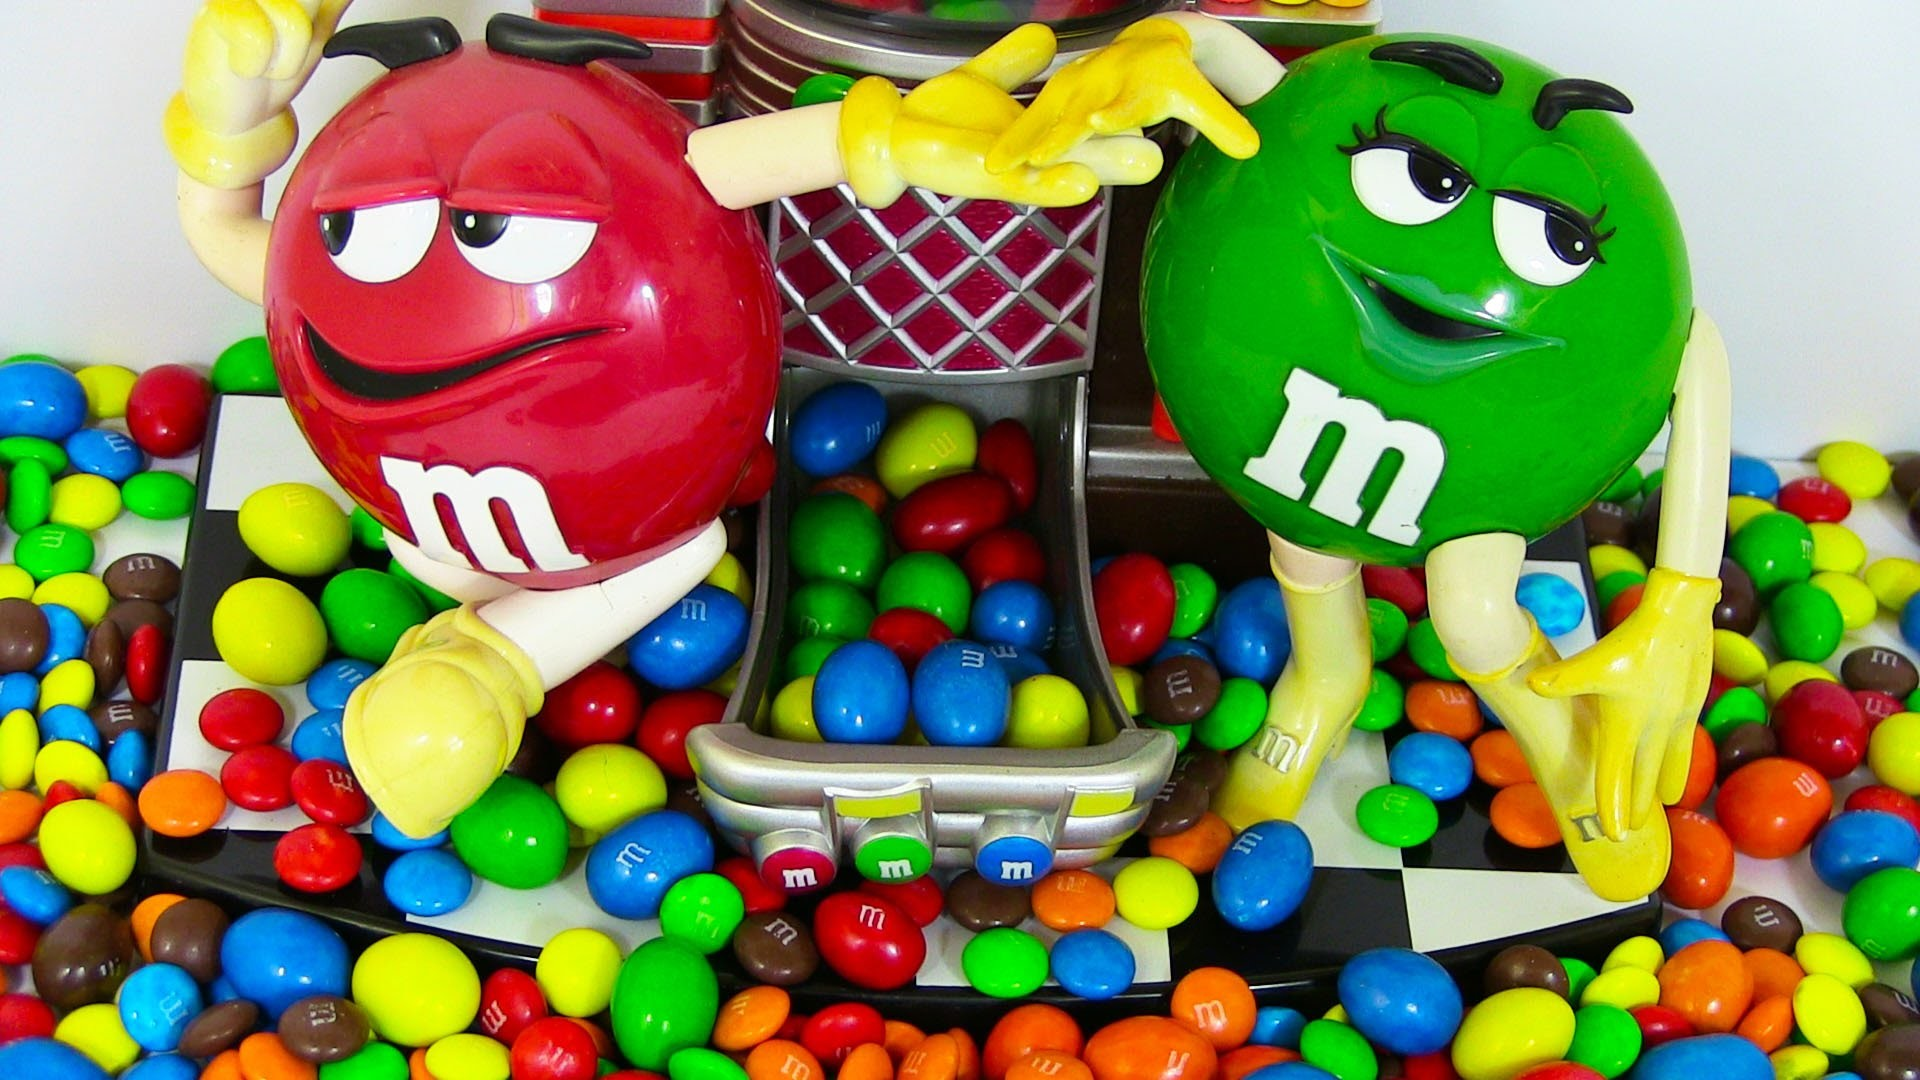 1920x1080 M&M's Candy Dispenser - Candy Machine Toy - ガムボールマシーン - YouTube